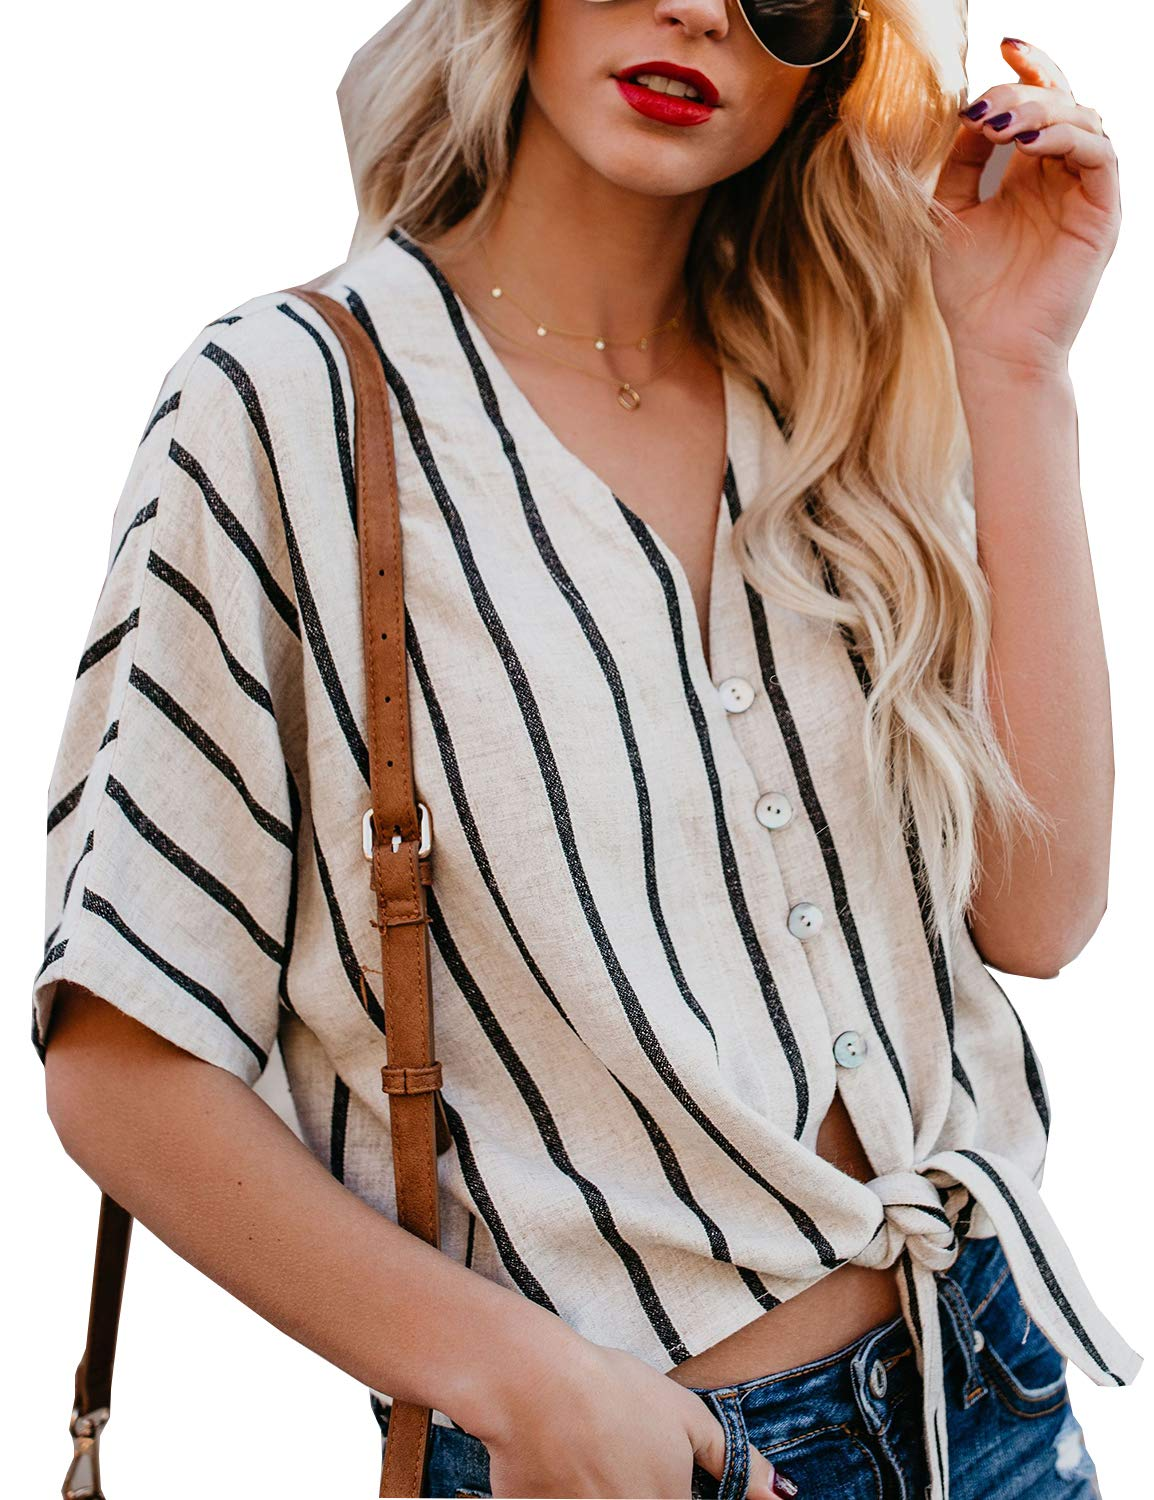 BMJL Women's Striped T Shirt Tie Knot Loose Top Short Sleeve V Neck Blouse